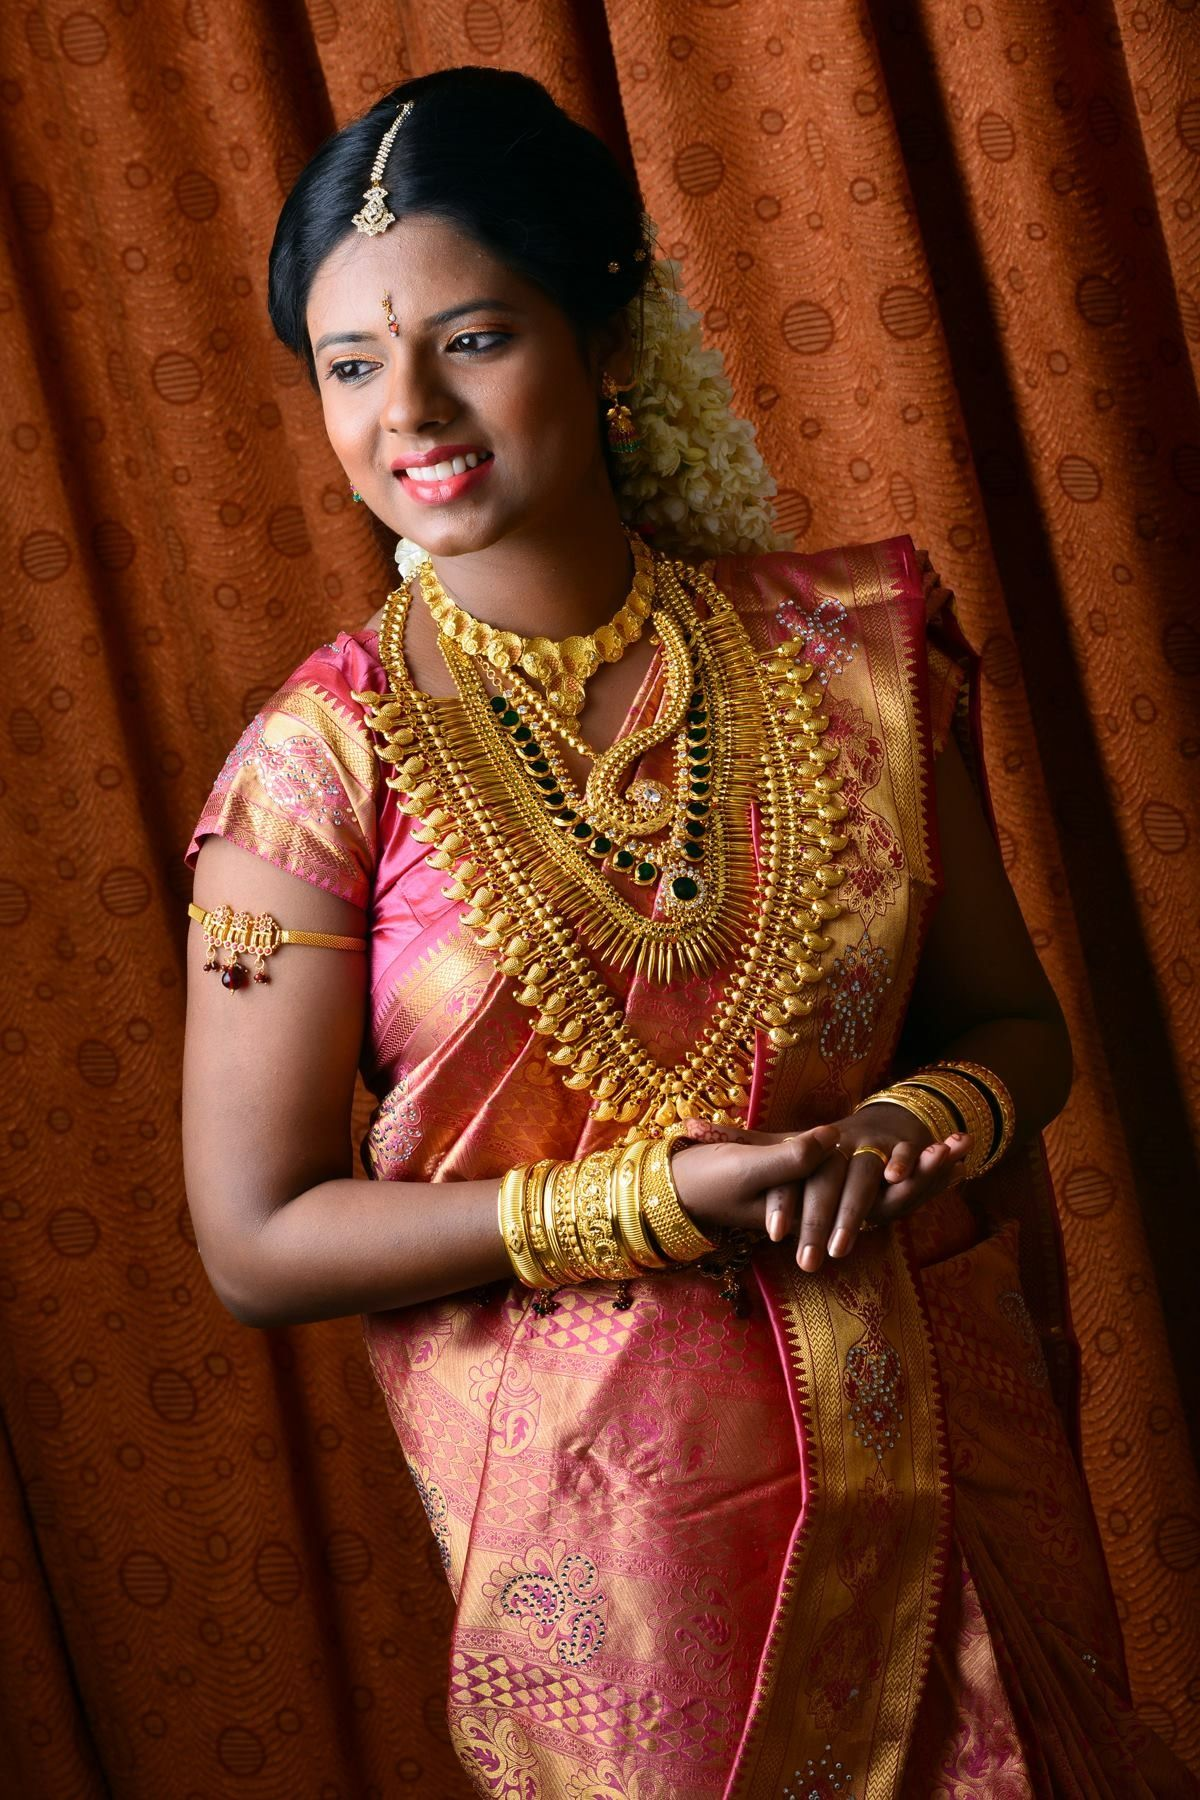 kerala wedding indian wedding indian bride south